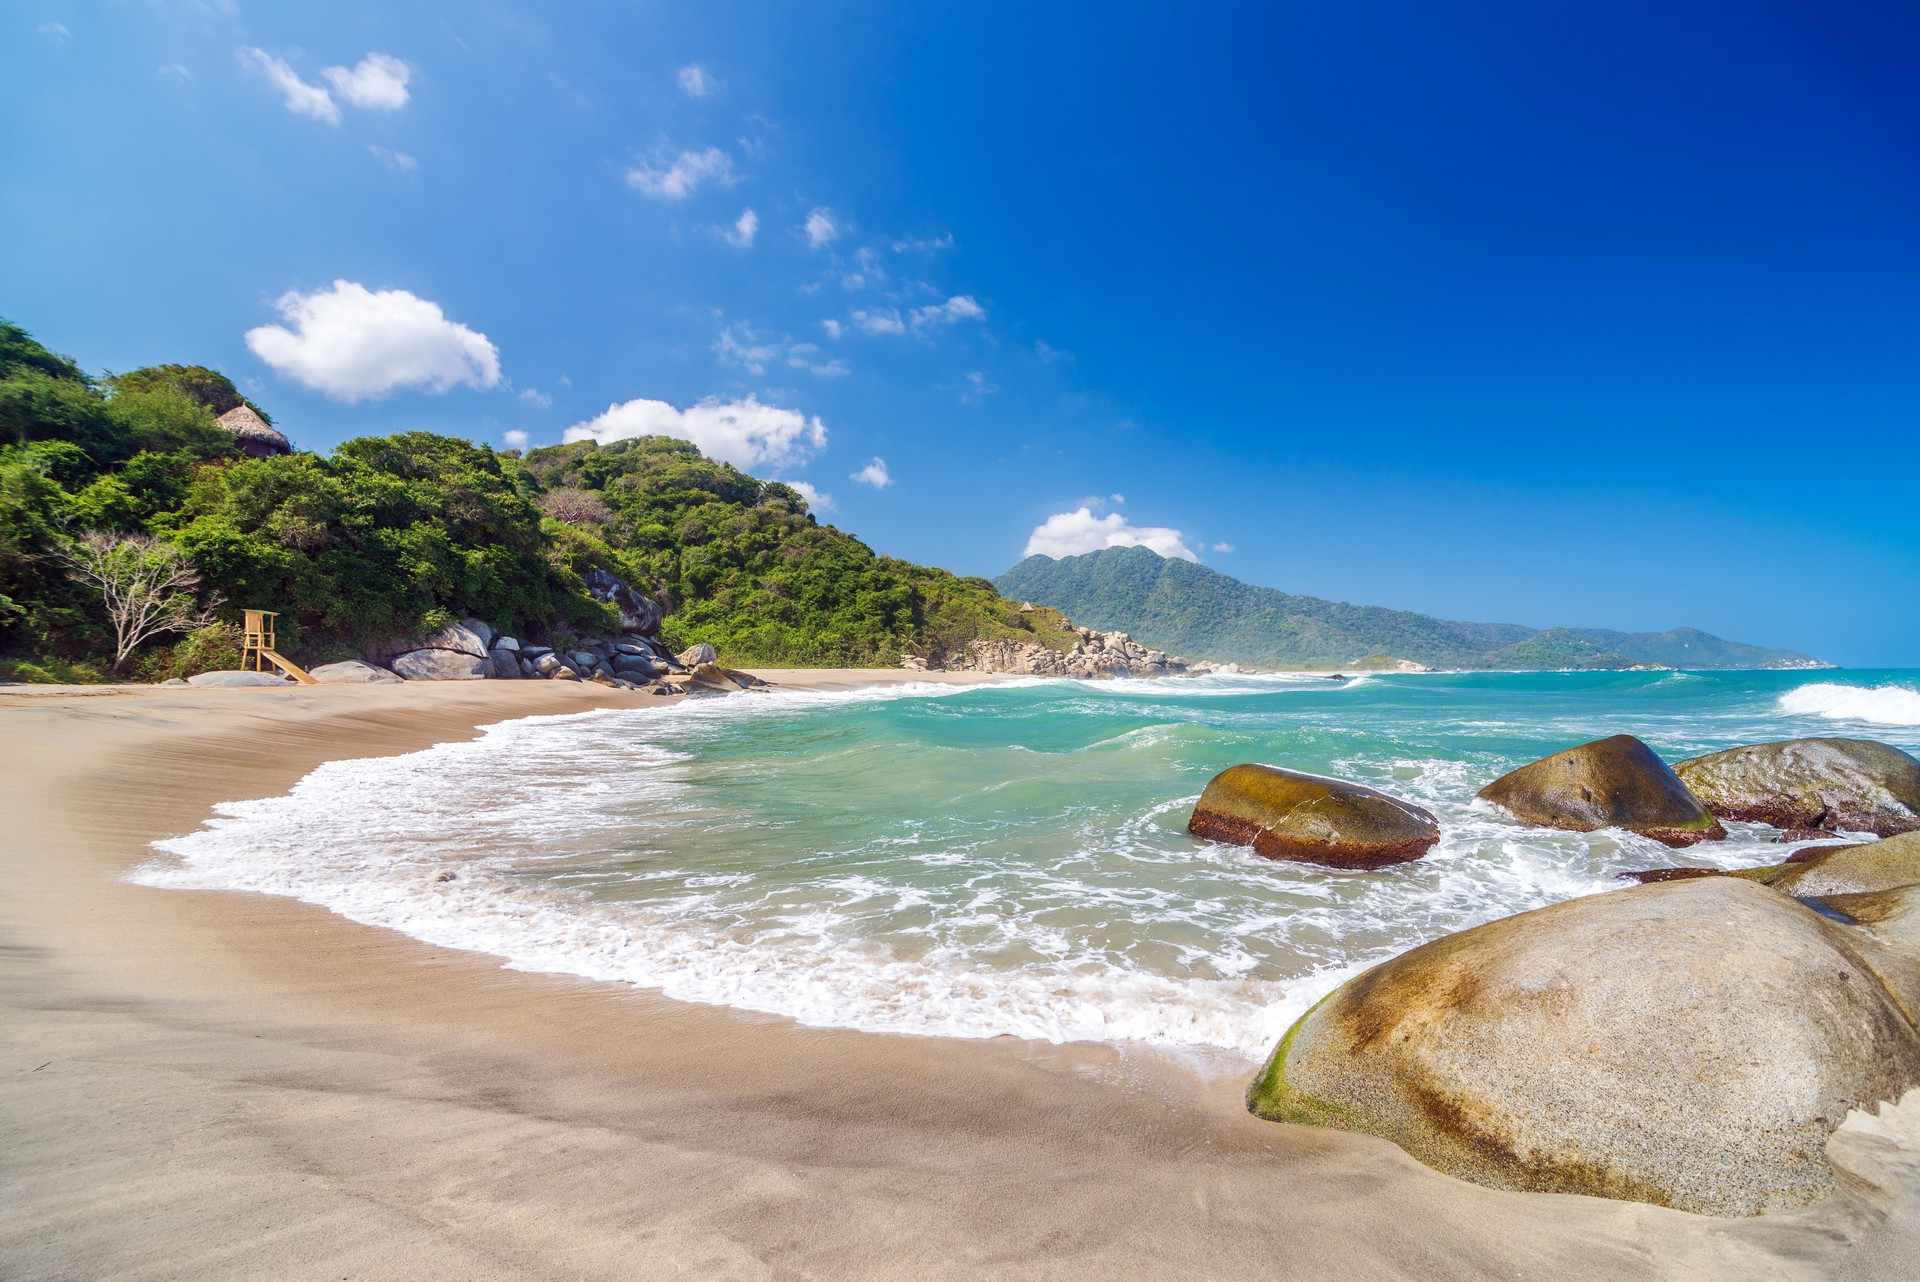 Beach in Colombia